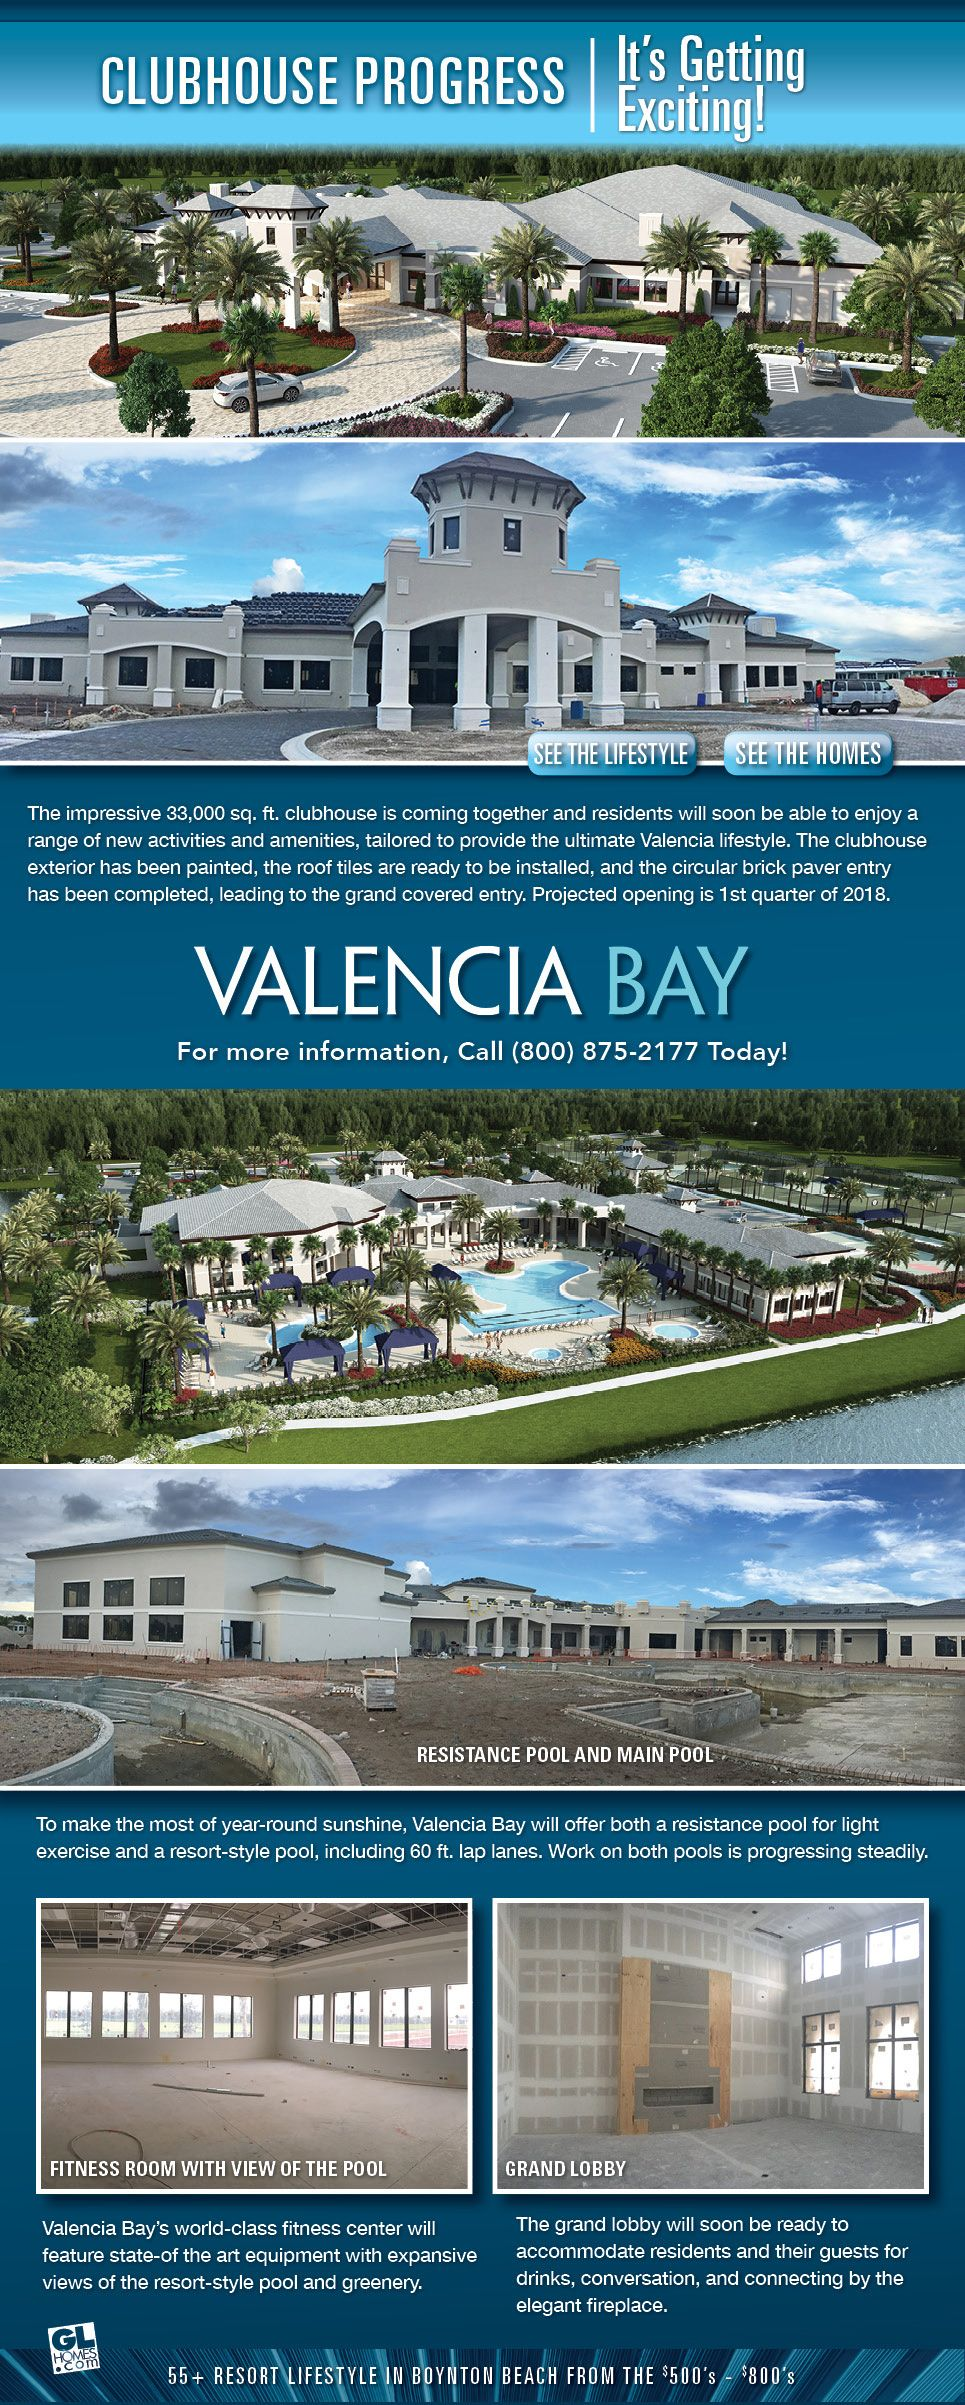 Valencia Bay Club Progress Photos In Boynton Beach Fl Gl Homes